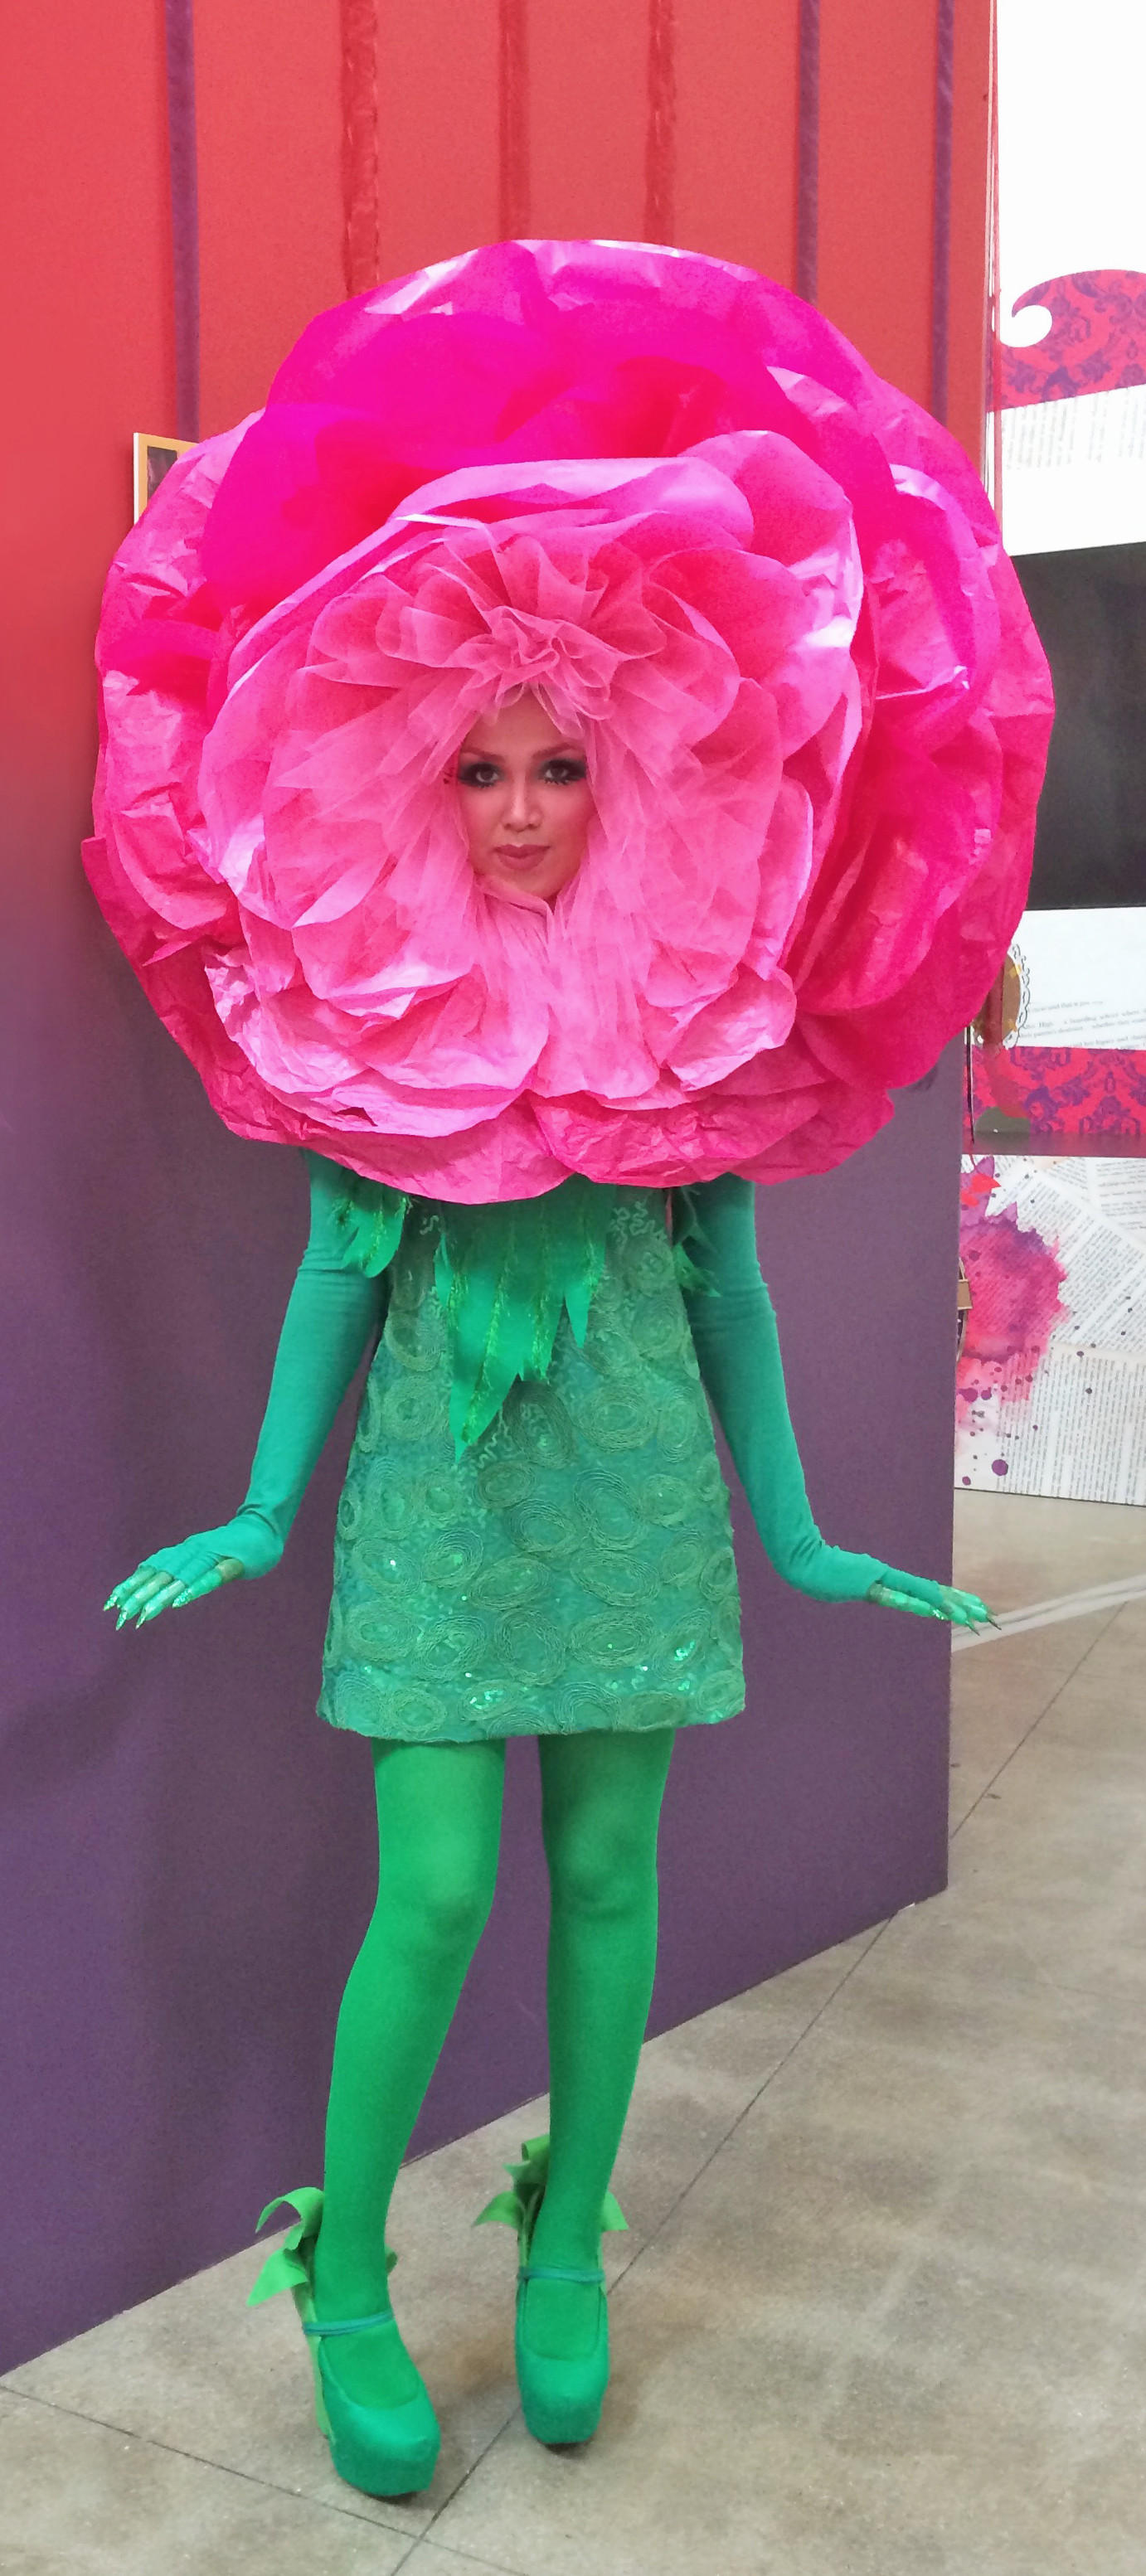 Flower Halloween Costume For Adults  Flower Face The Beautifulcircus